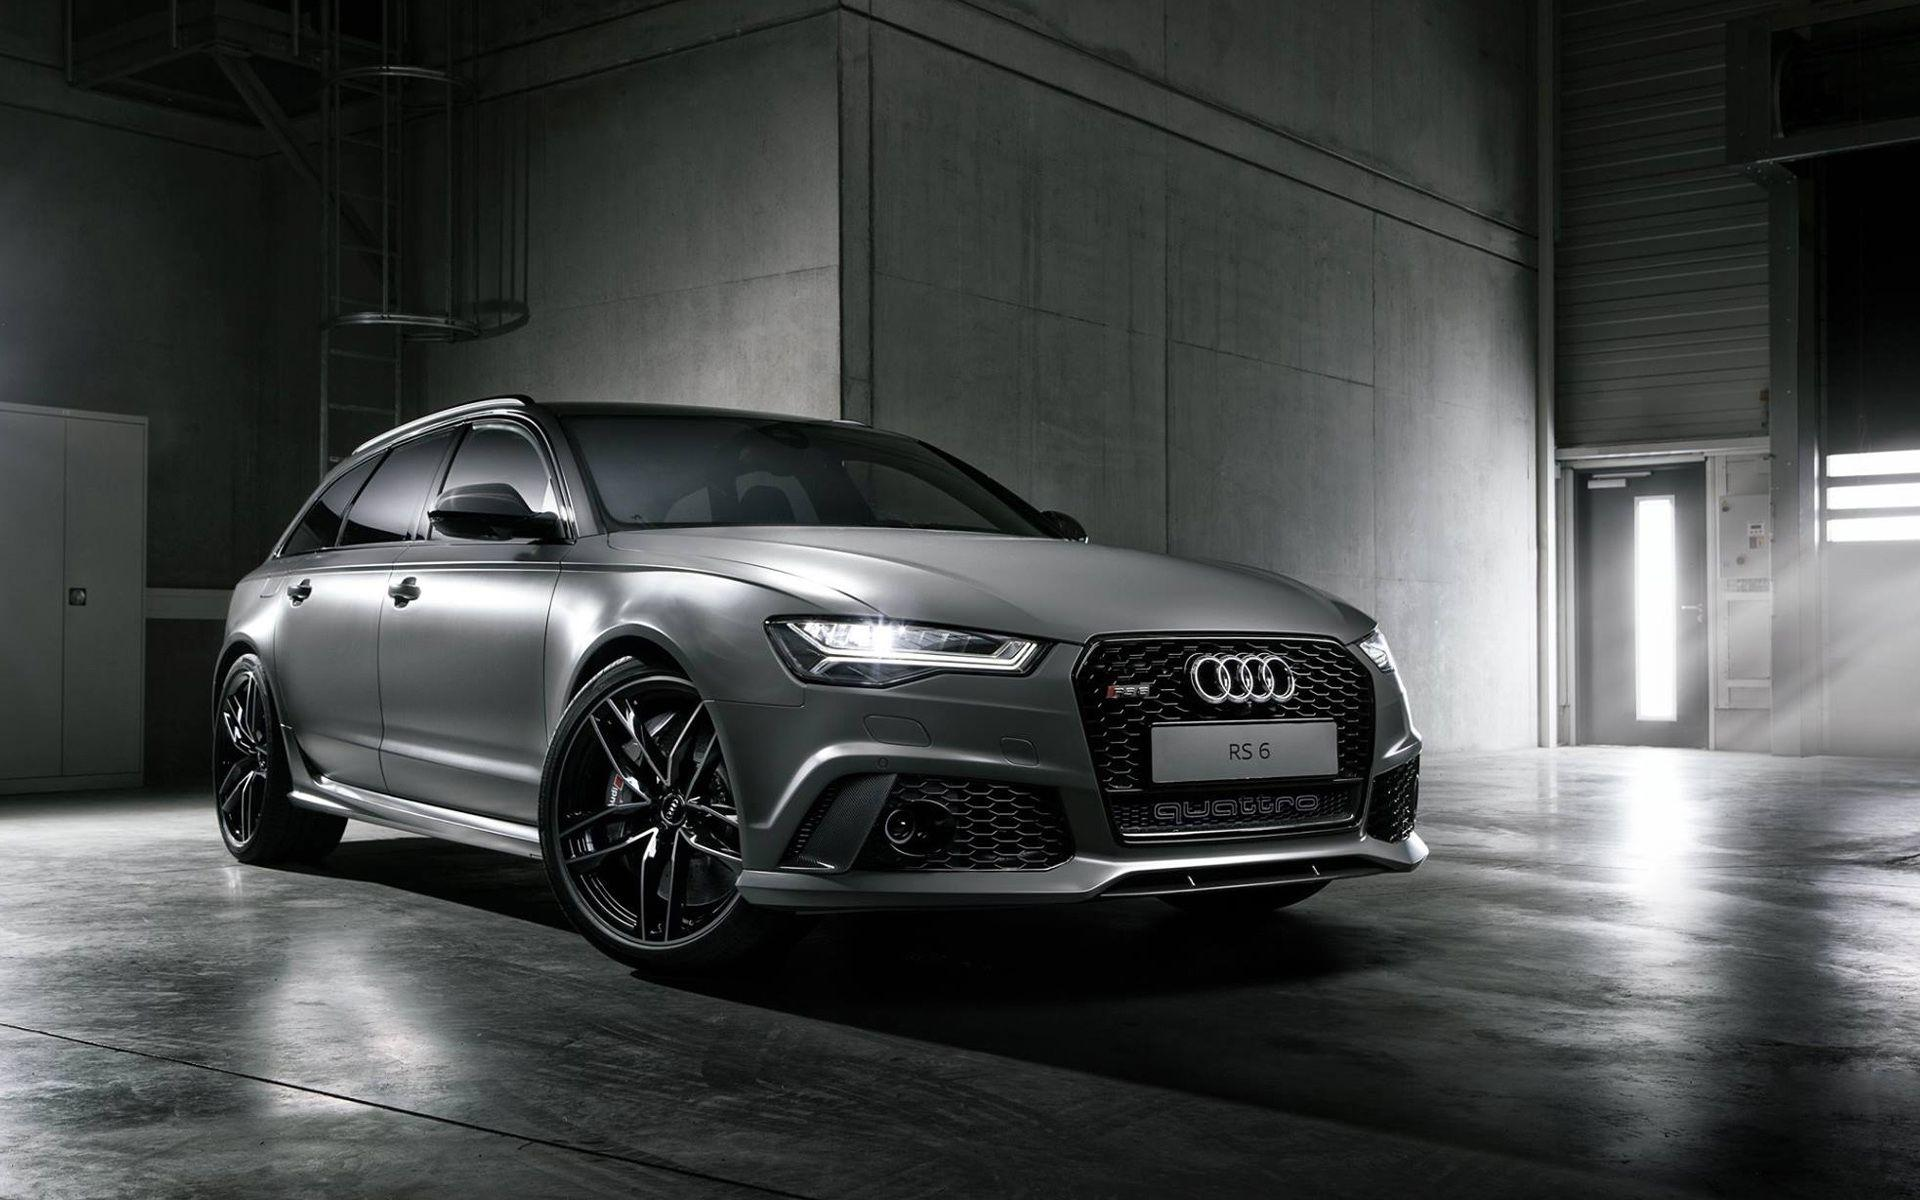 Audi Rs6 Wallpapers Wallpaper Cave